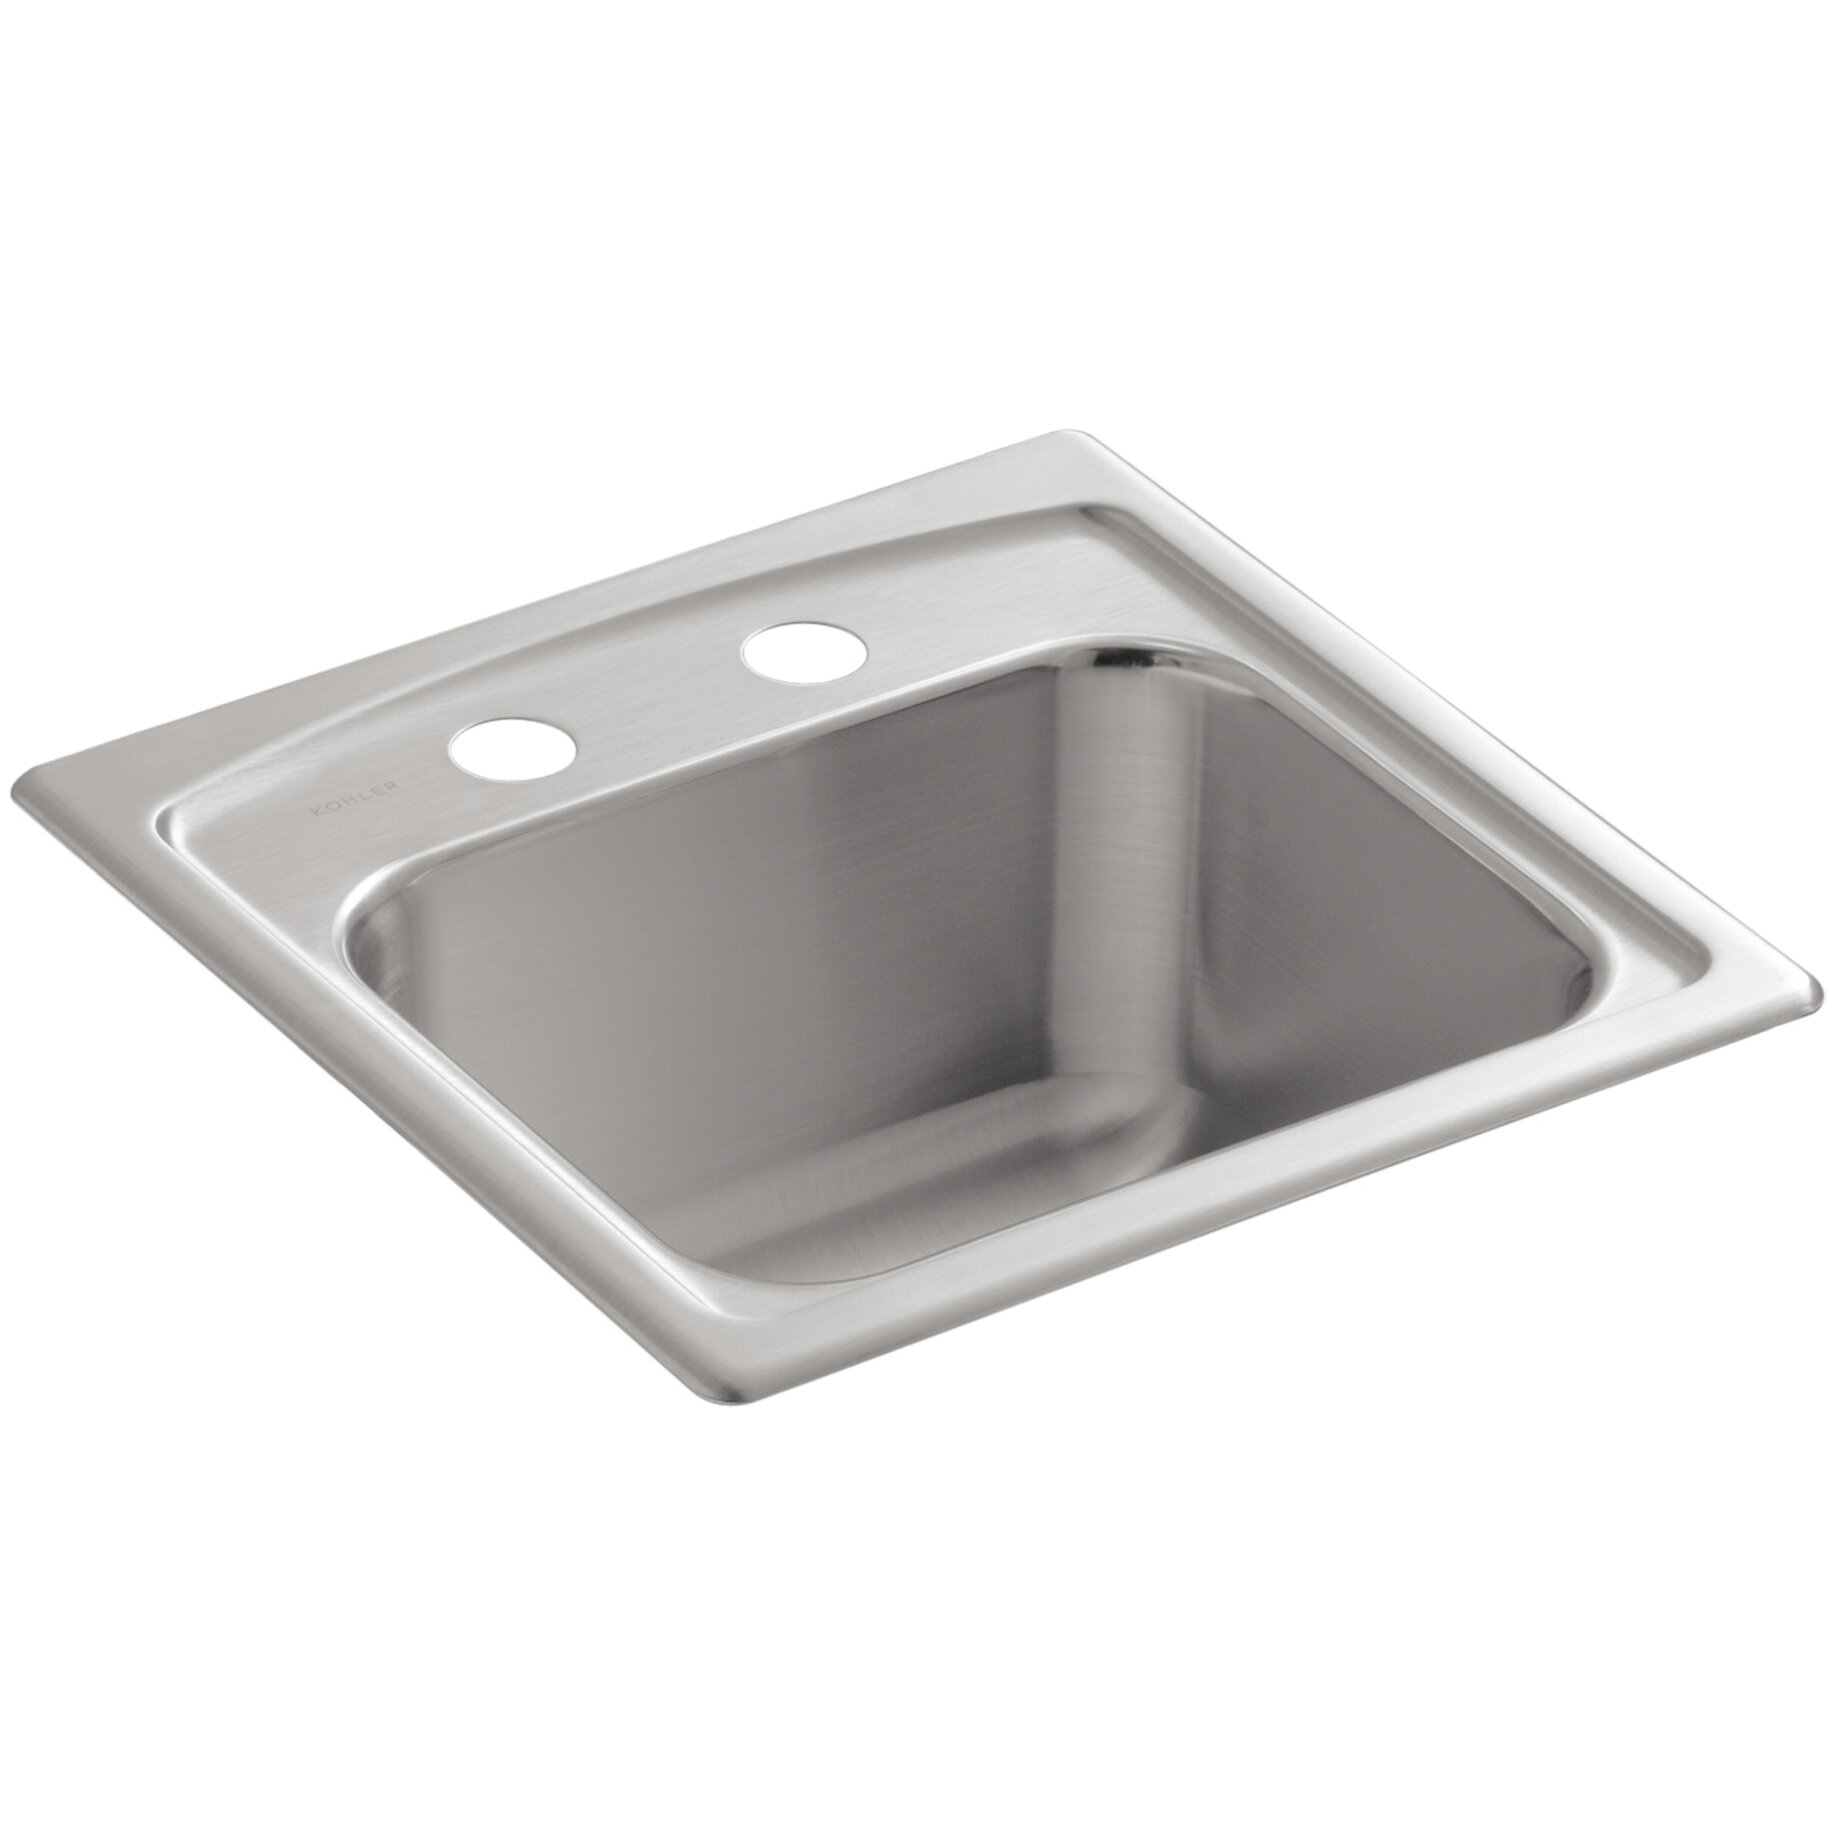 Kohler Toccata Top-Mount Bar Sink with 2 Faucet Holes & Reviews ...